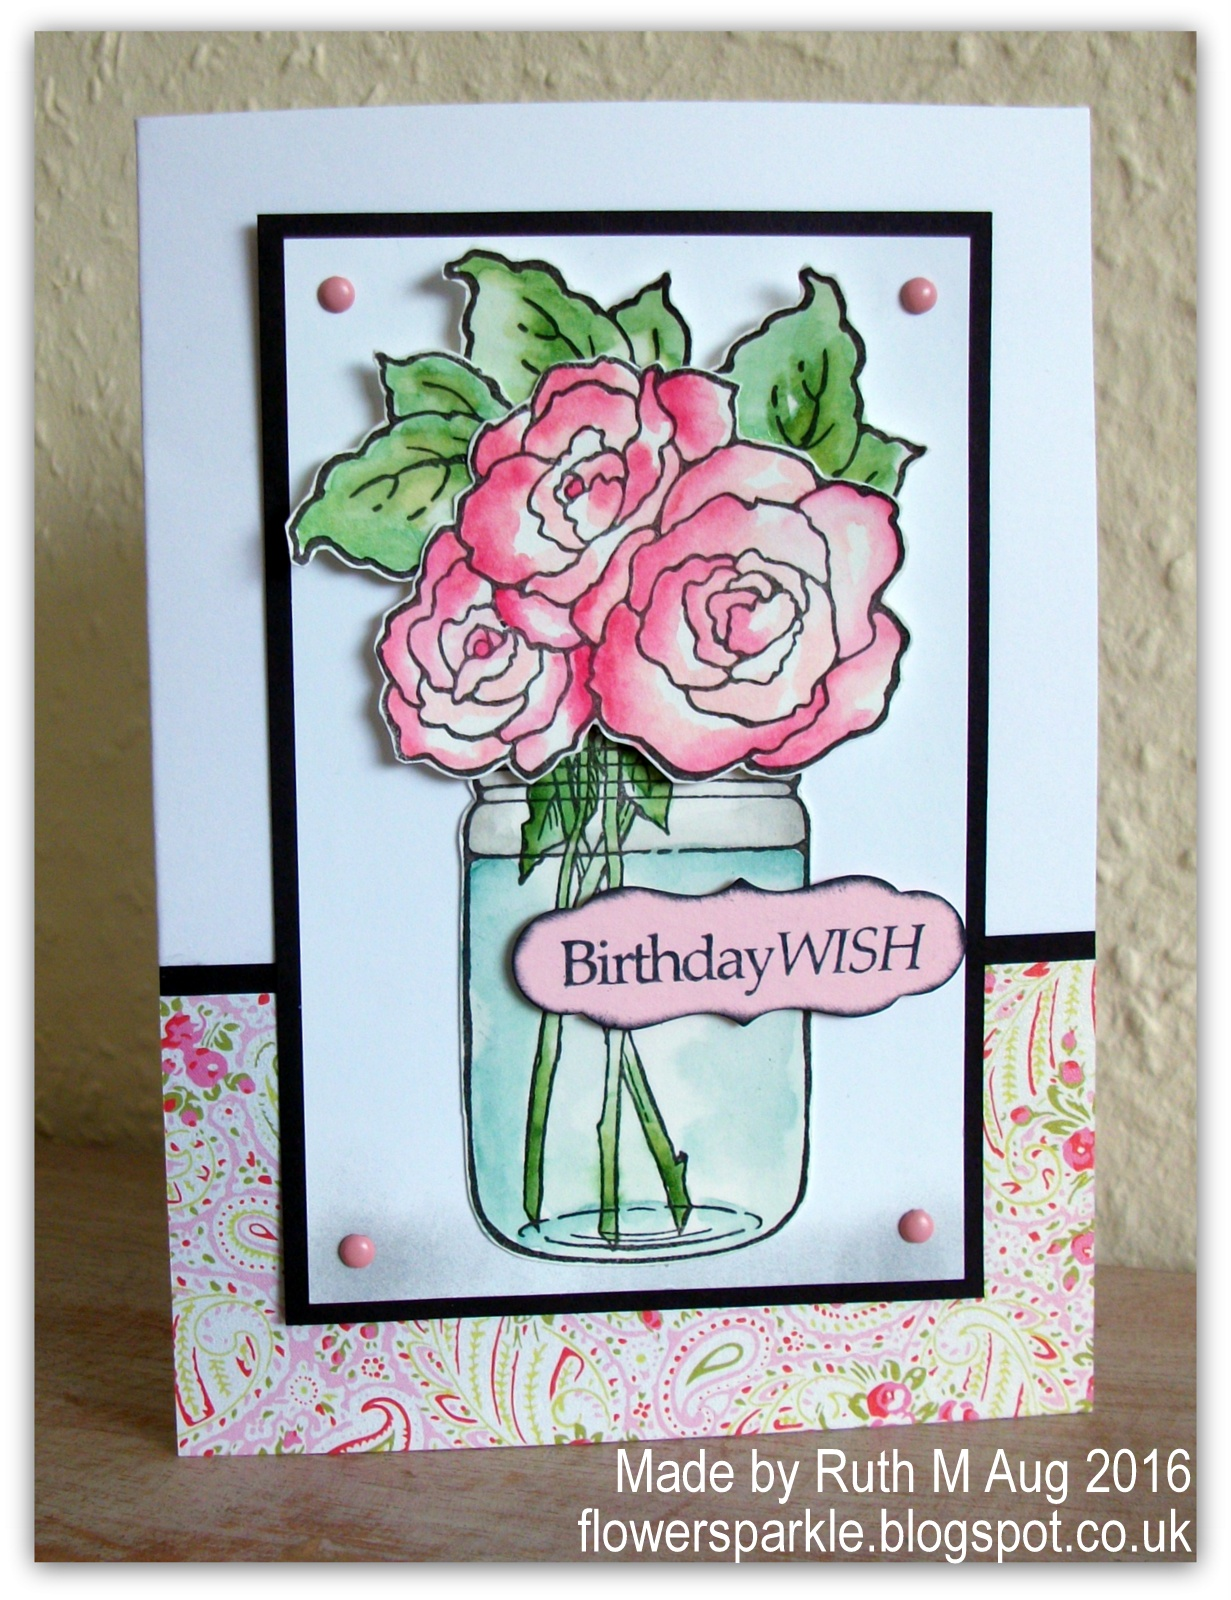 The Jar Image Has Word Hello On It But I Wanted To Cover That Up So Popped Birthday Wish Sentiment Label And Then Also